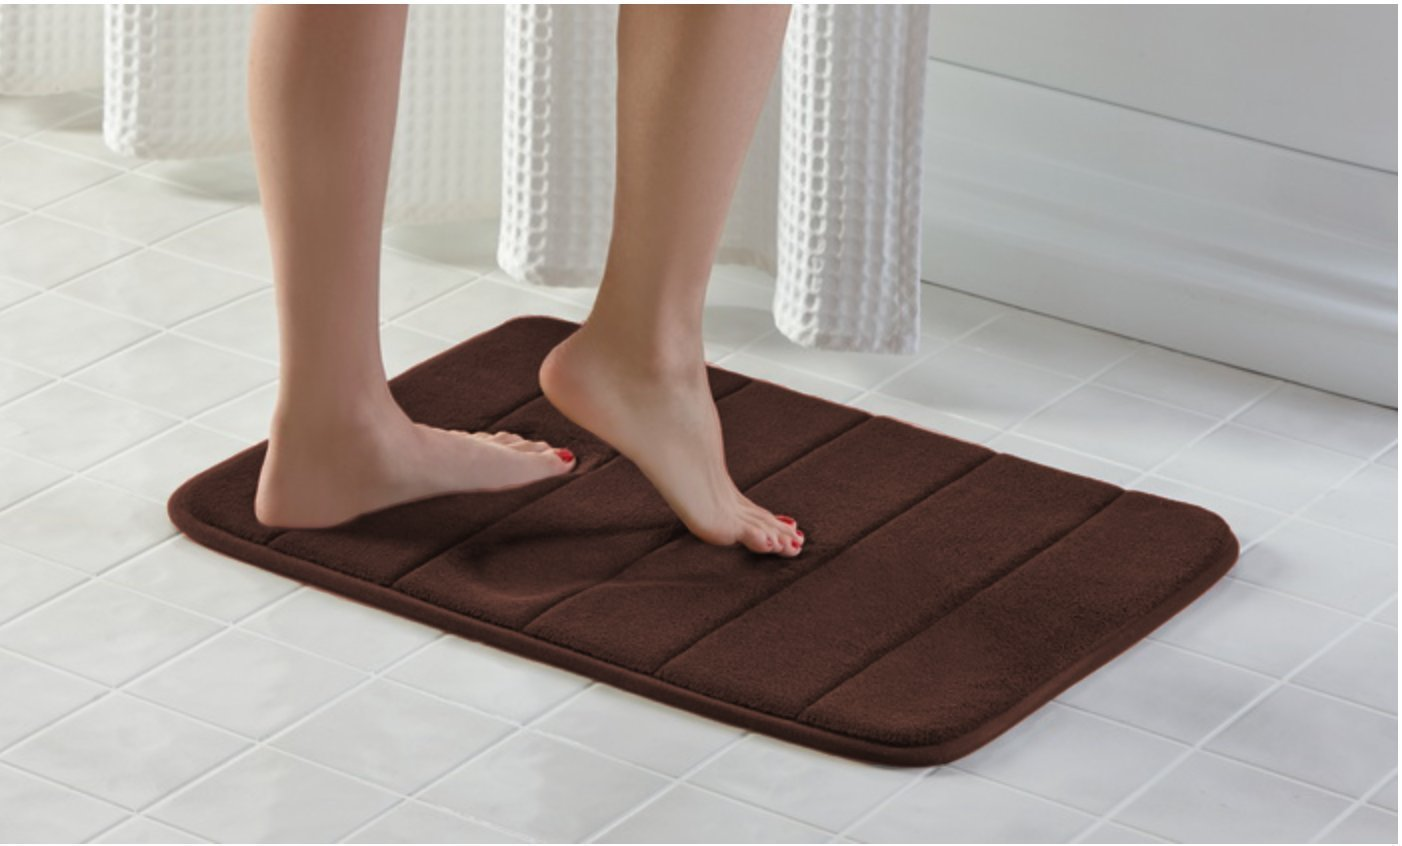 Townhouse Memory Foam Bath Mat Soft, Luxury Cushioned Pad for Bathroom Floors ,Non-Slip, Absorbent, Baby Shower Mats , Cushions and Dries Feet,Bathroom Rug Carpet – Brown 17X24 Kanma Inc.